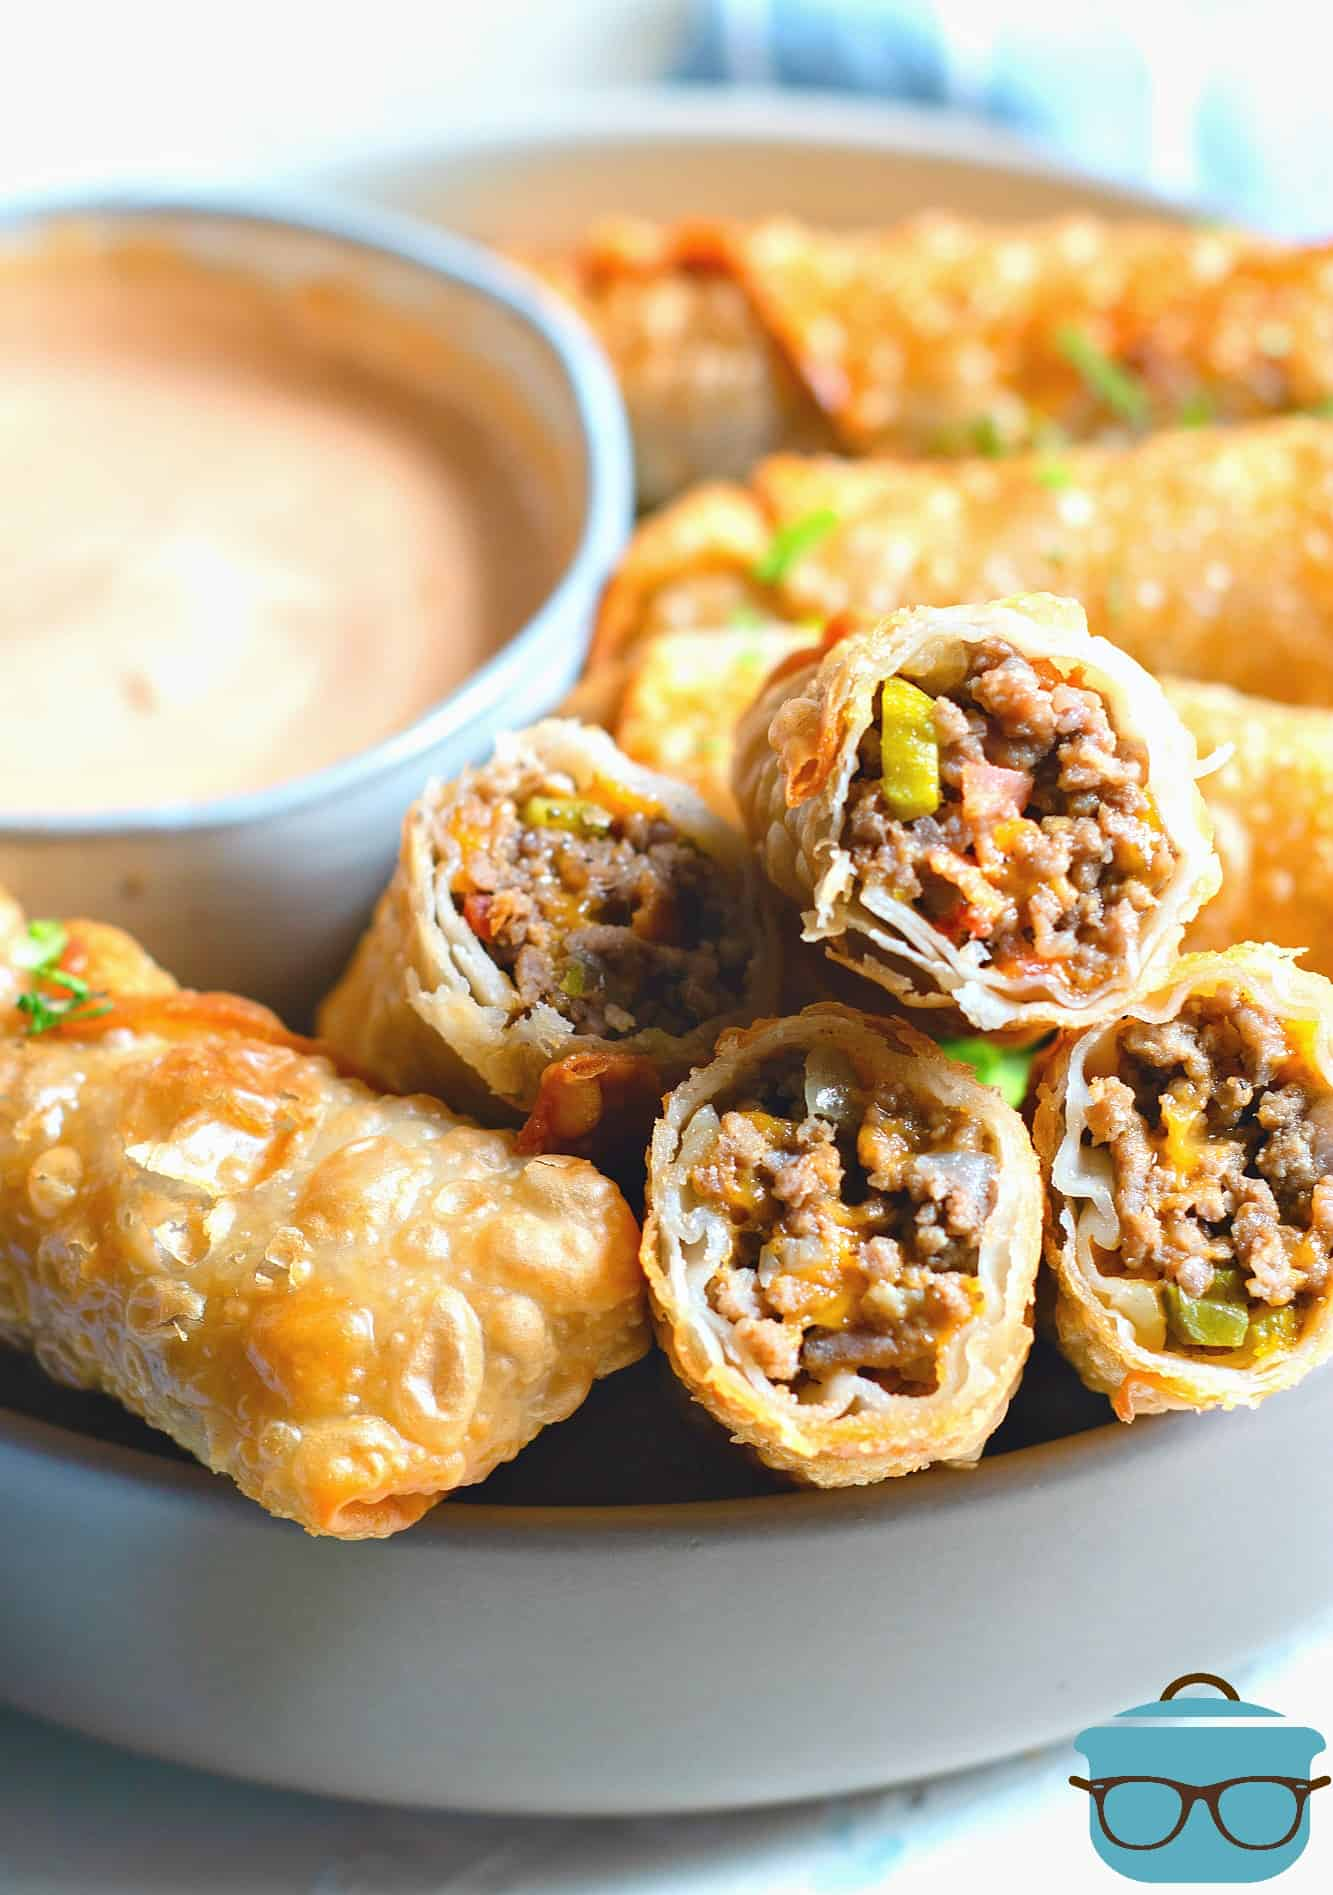 Cheeseburger Egg Rolls, fully cooked on a platter with dipping sauce in the background.